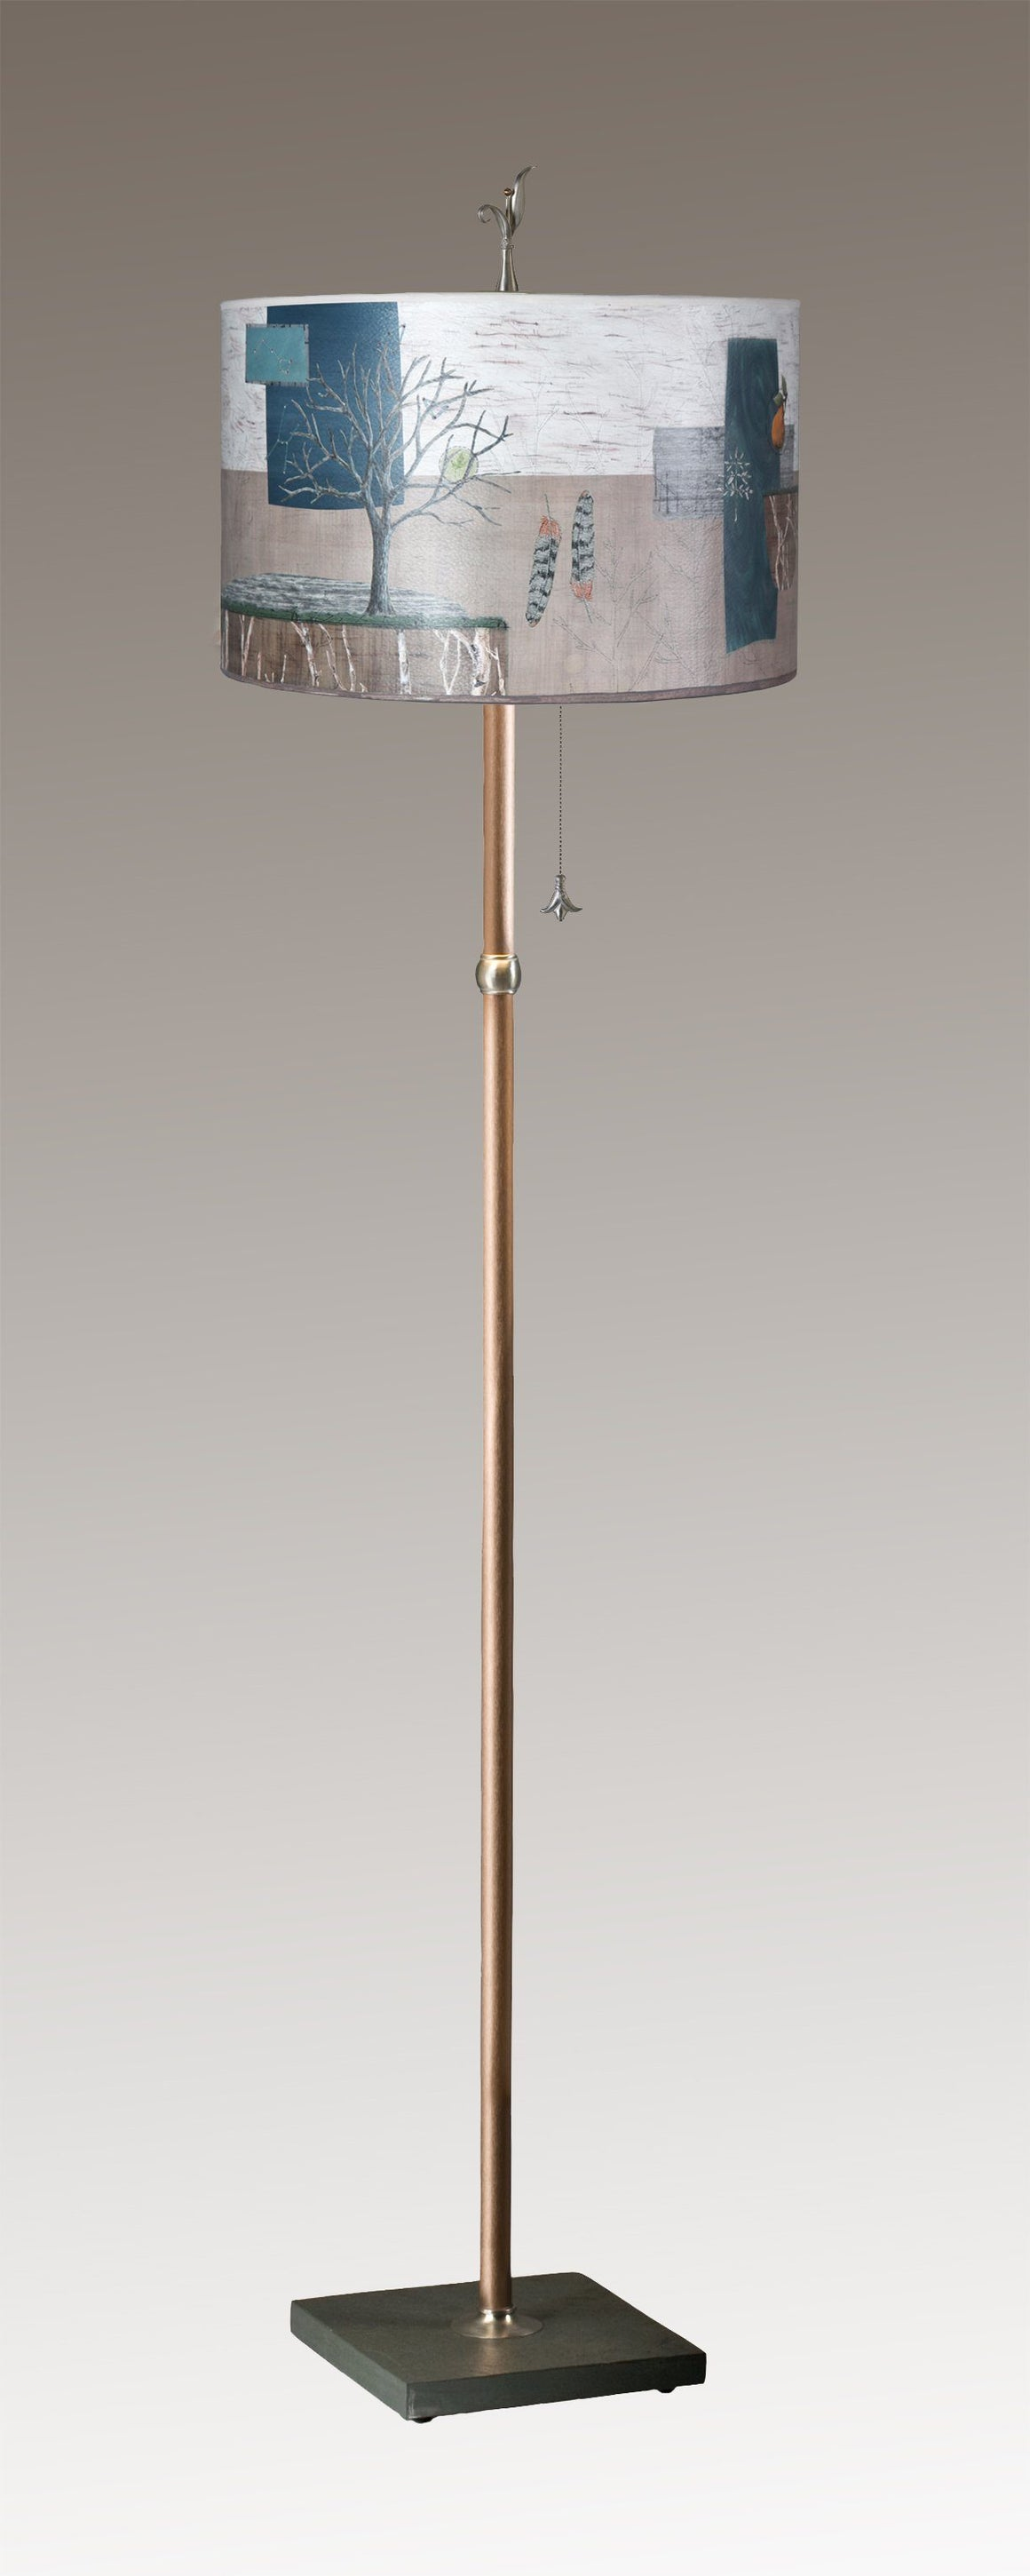 Copper Floor Lamp on Vermont Slate with Large Drum Shade in Wander in Drift